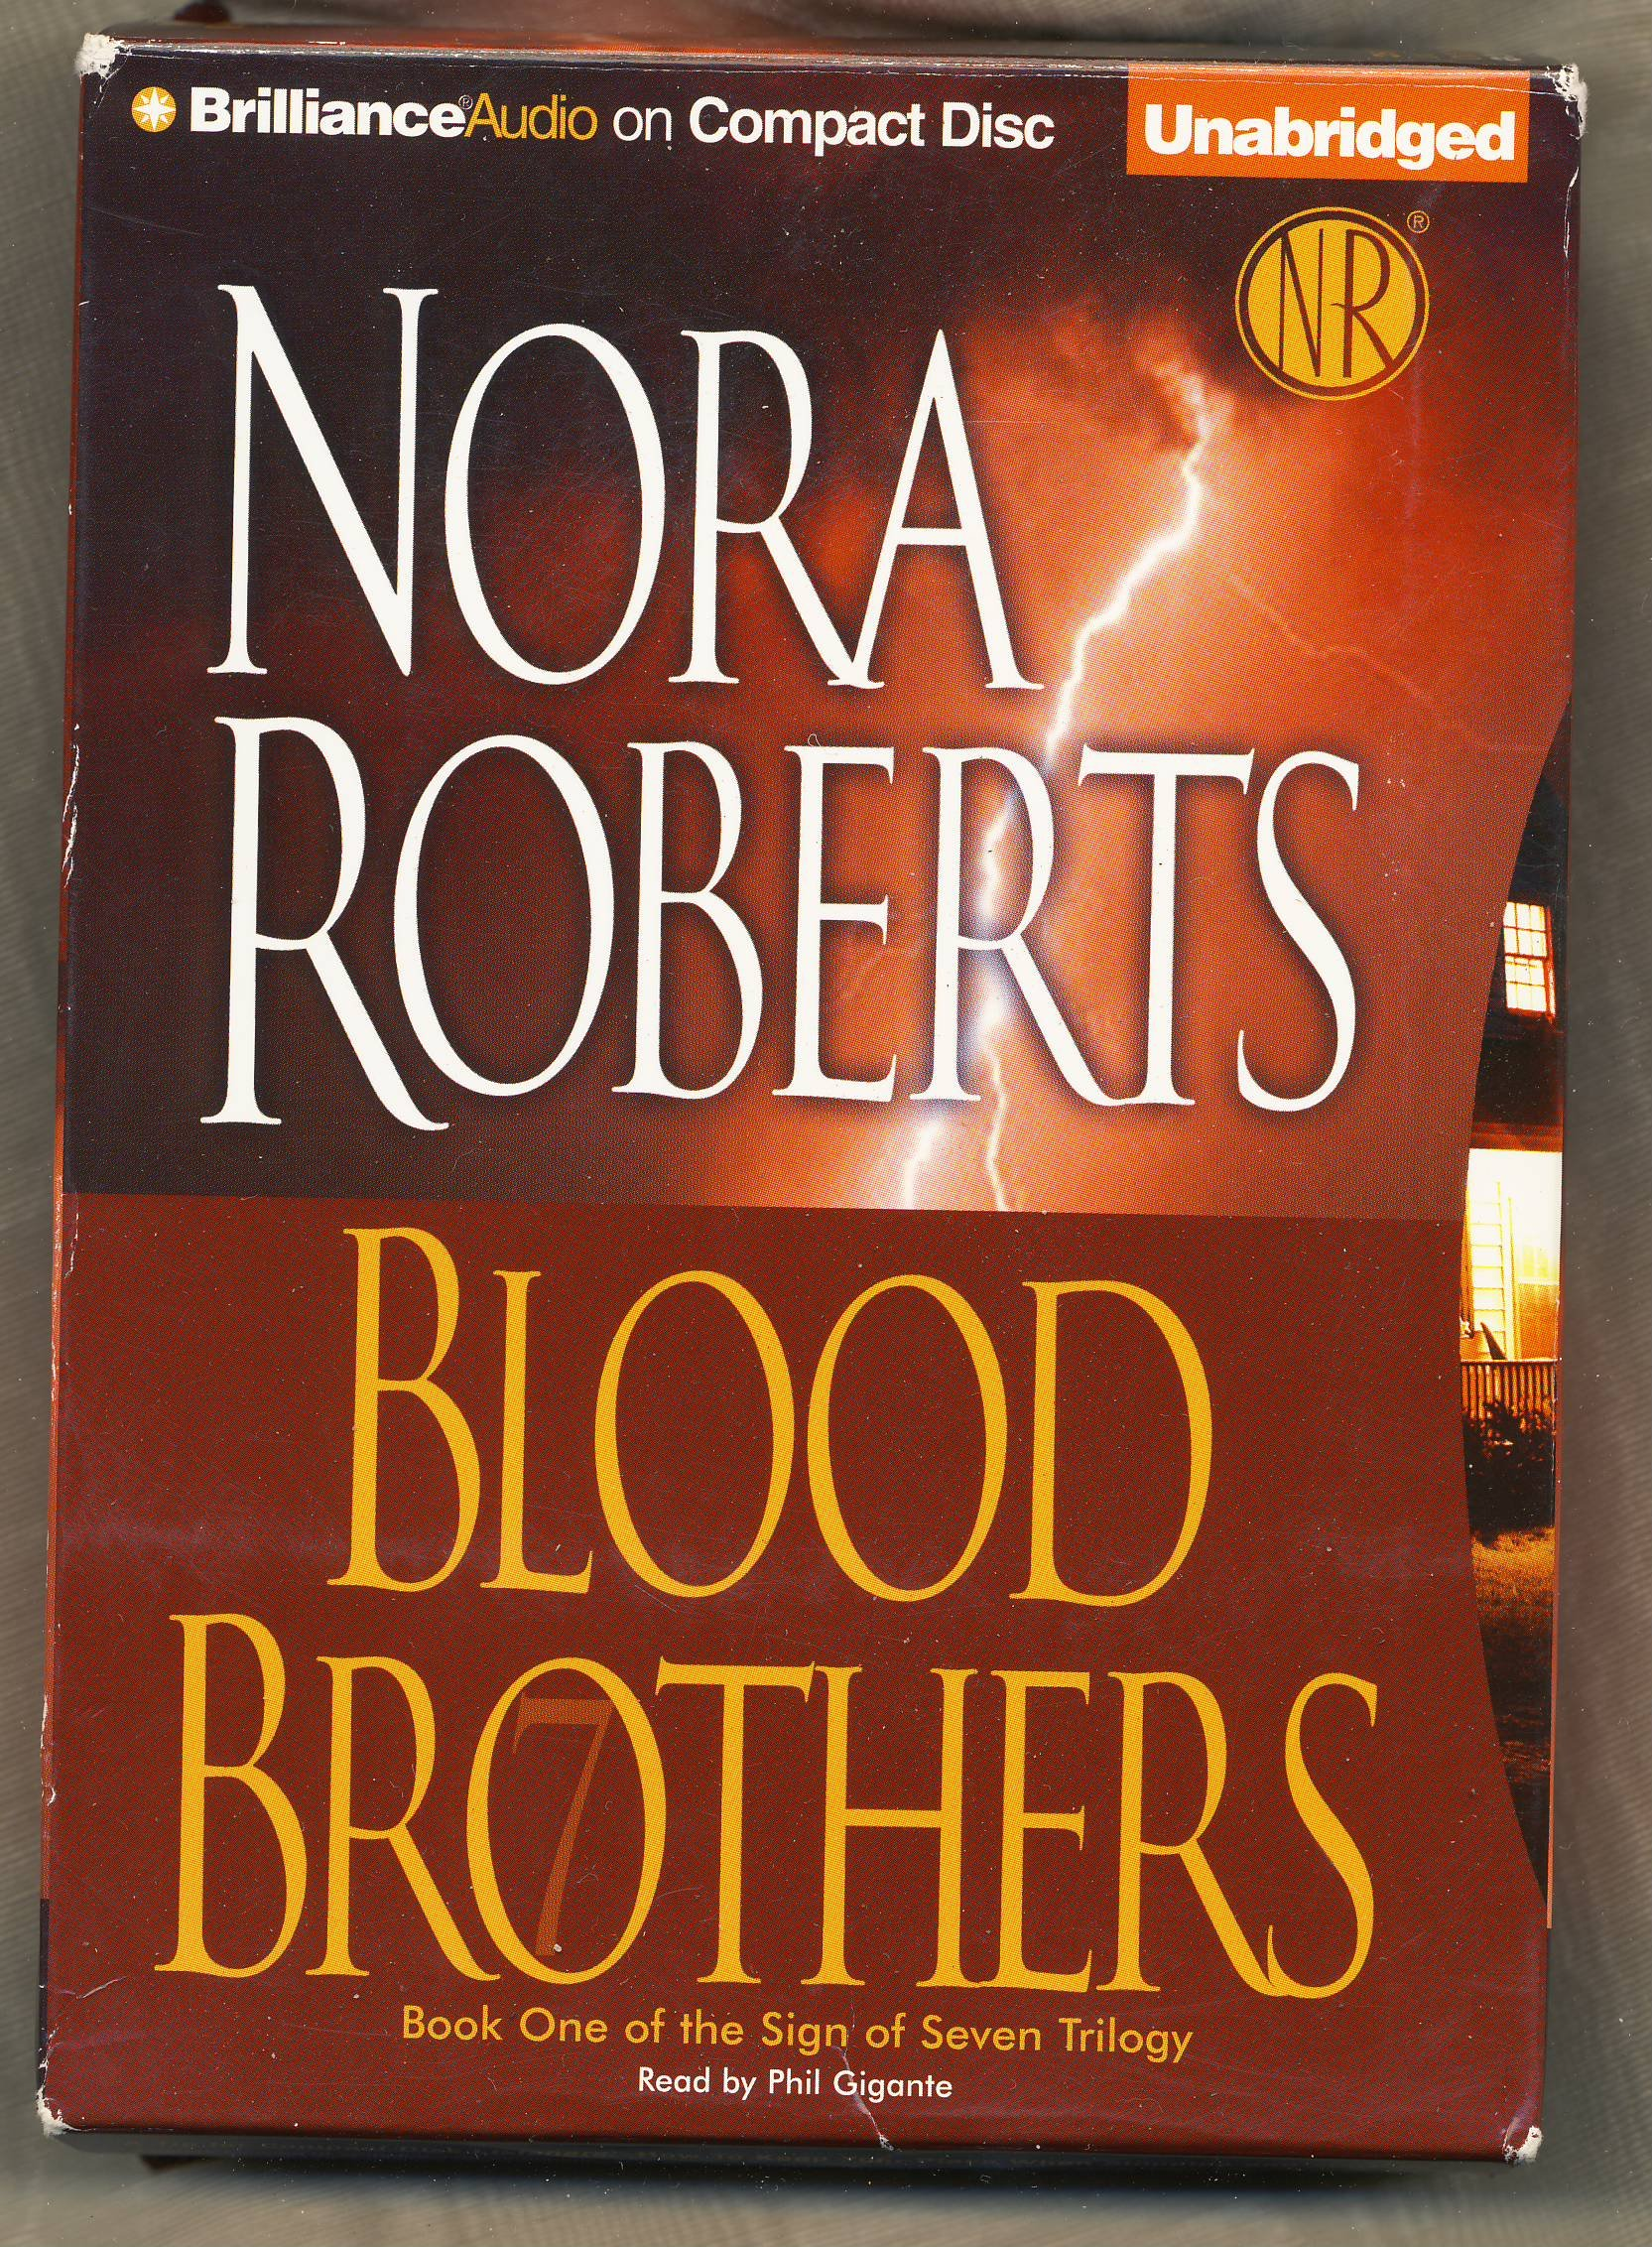 Blood Brothers by Nora Roberts Unabridged CD Audiobook (Sign of Seven Trilogy) PDF